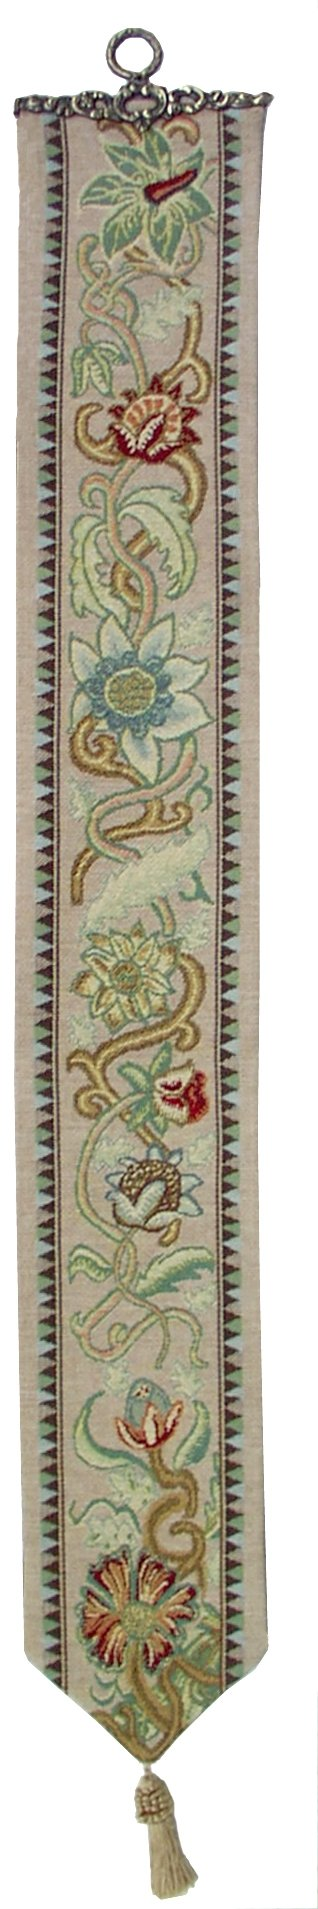 Tree of Life - Pastel I Belgian Tapestry Decorative Bell Pull by Charlotte Home Furnishings Inc. (Image #1)